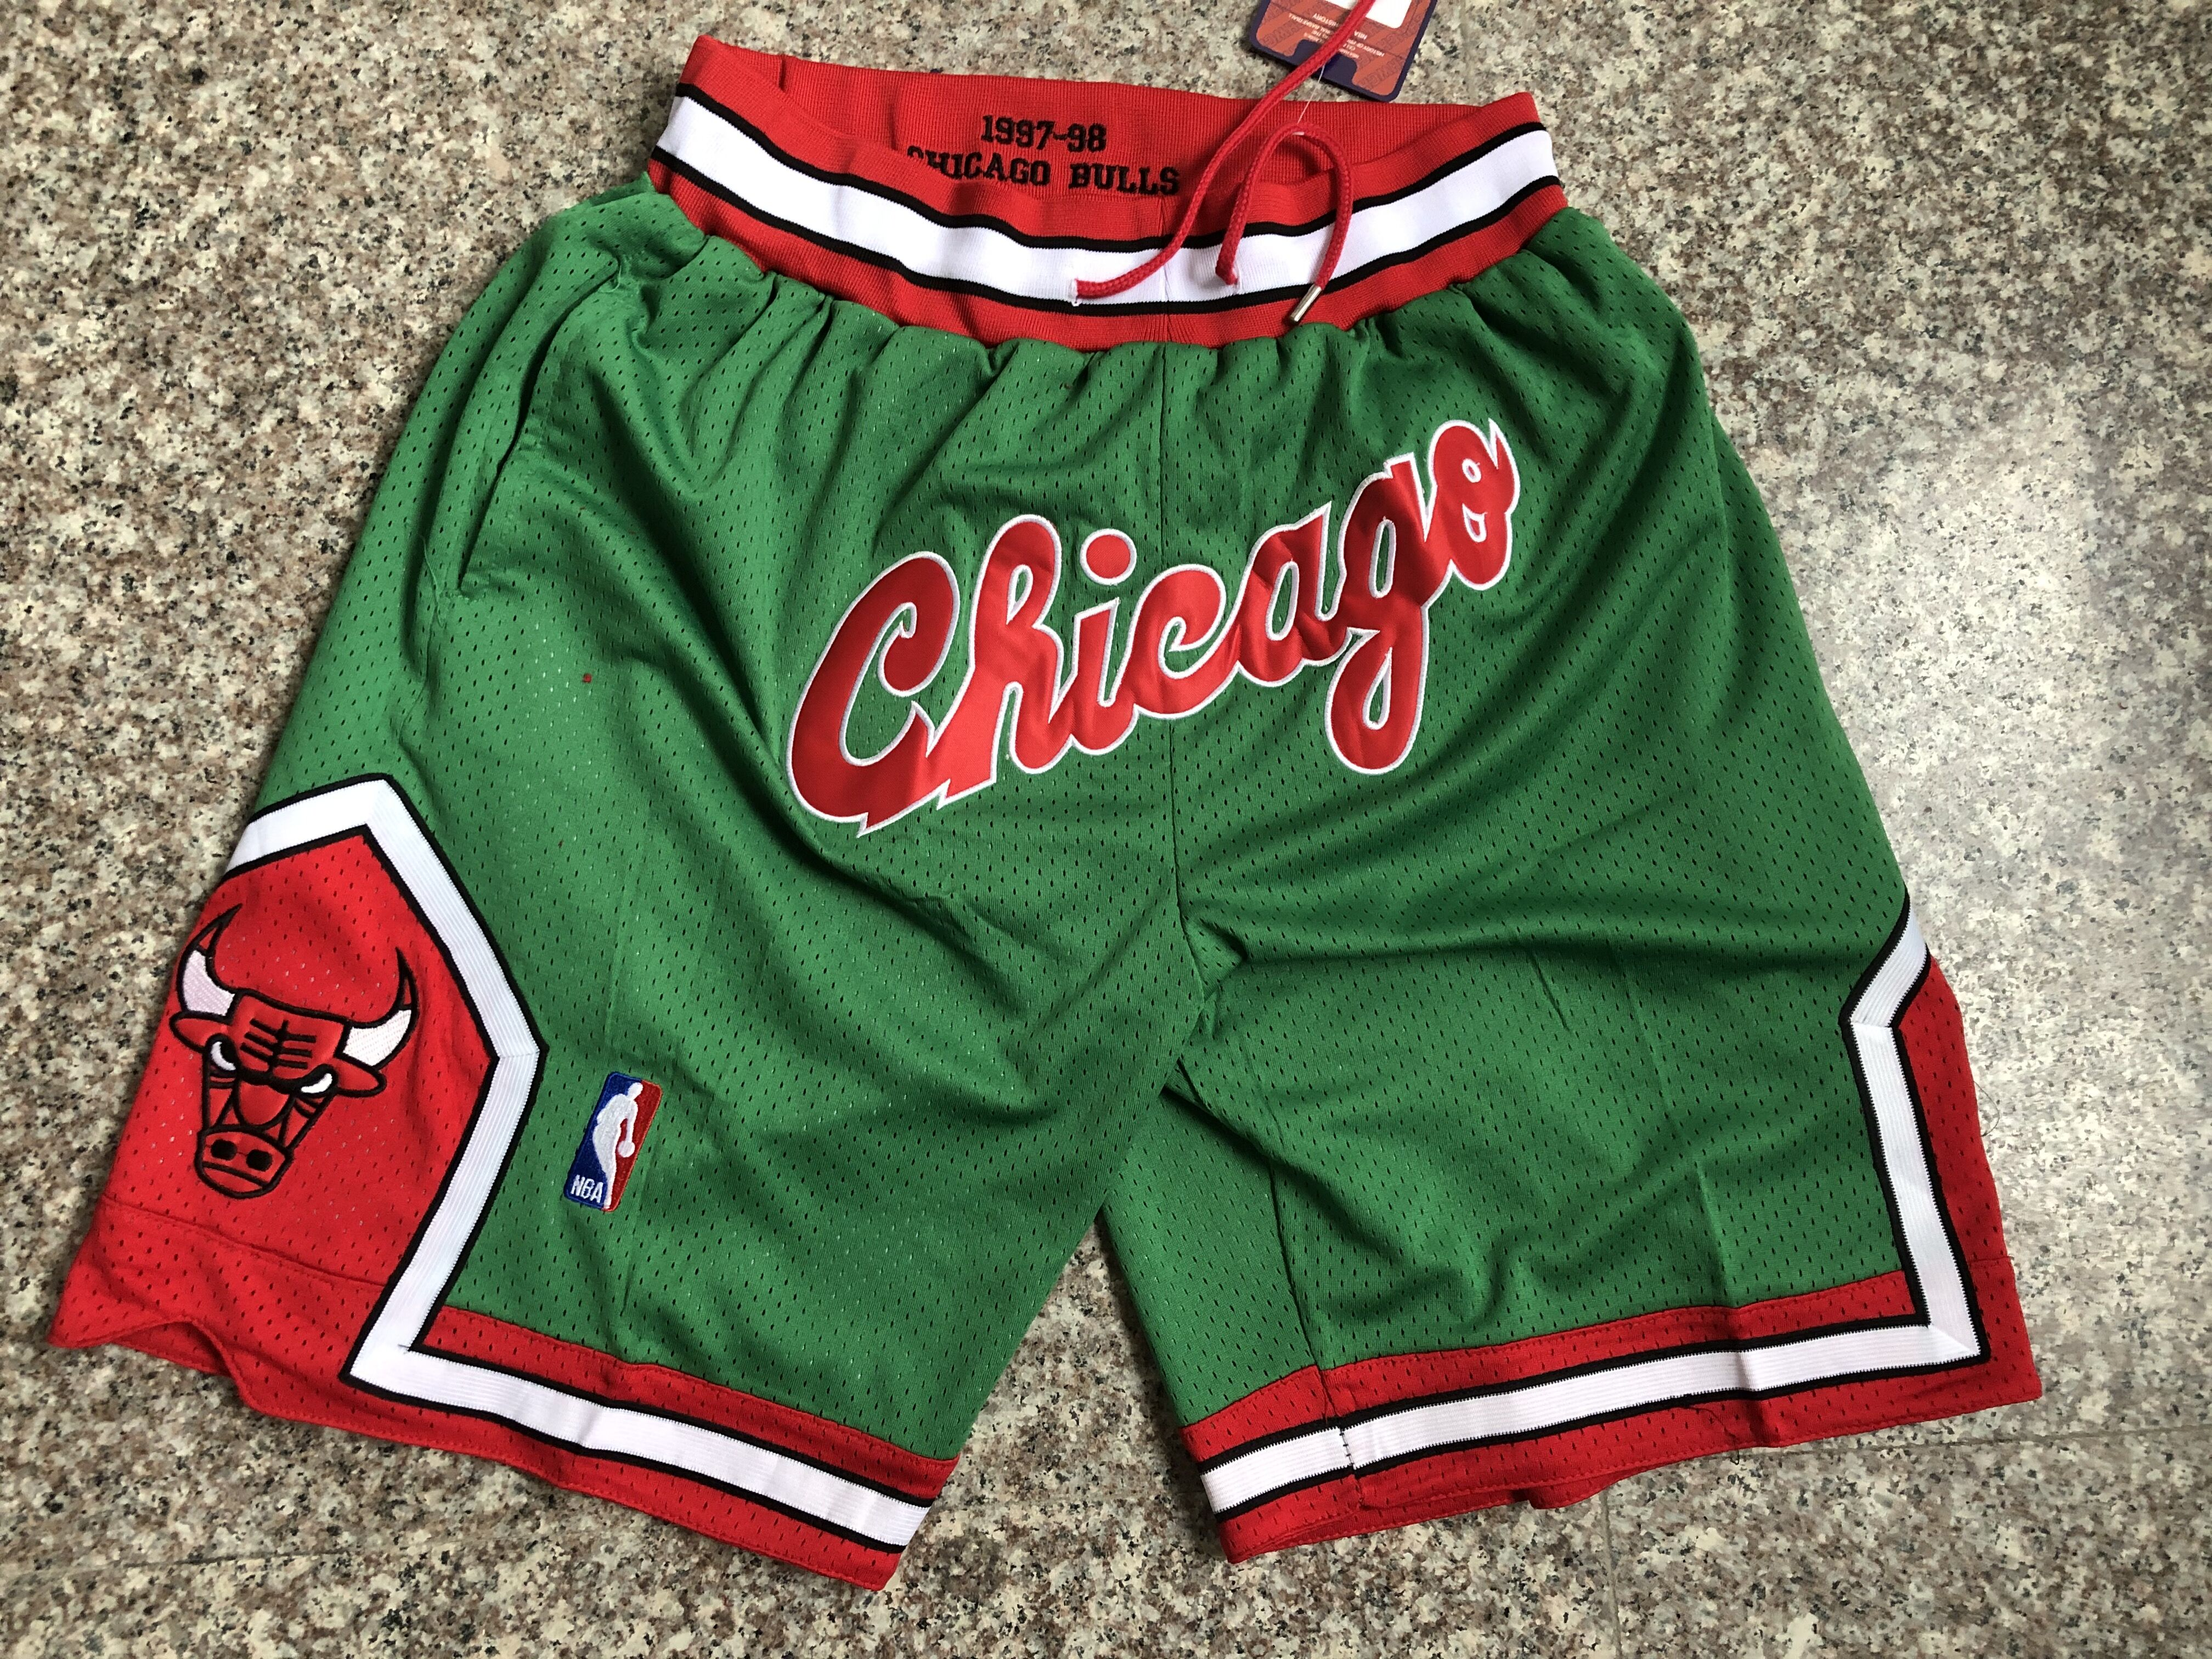 2020 Men NBA Chicago Bulls green shorts style 5